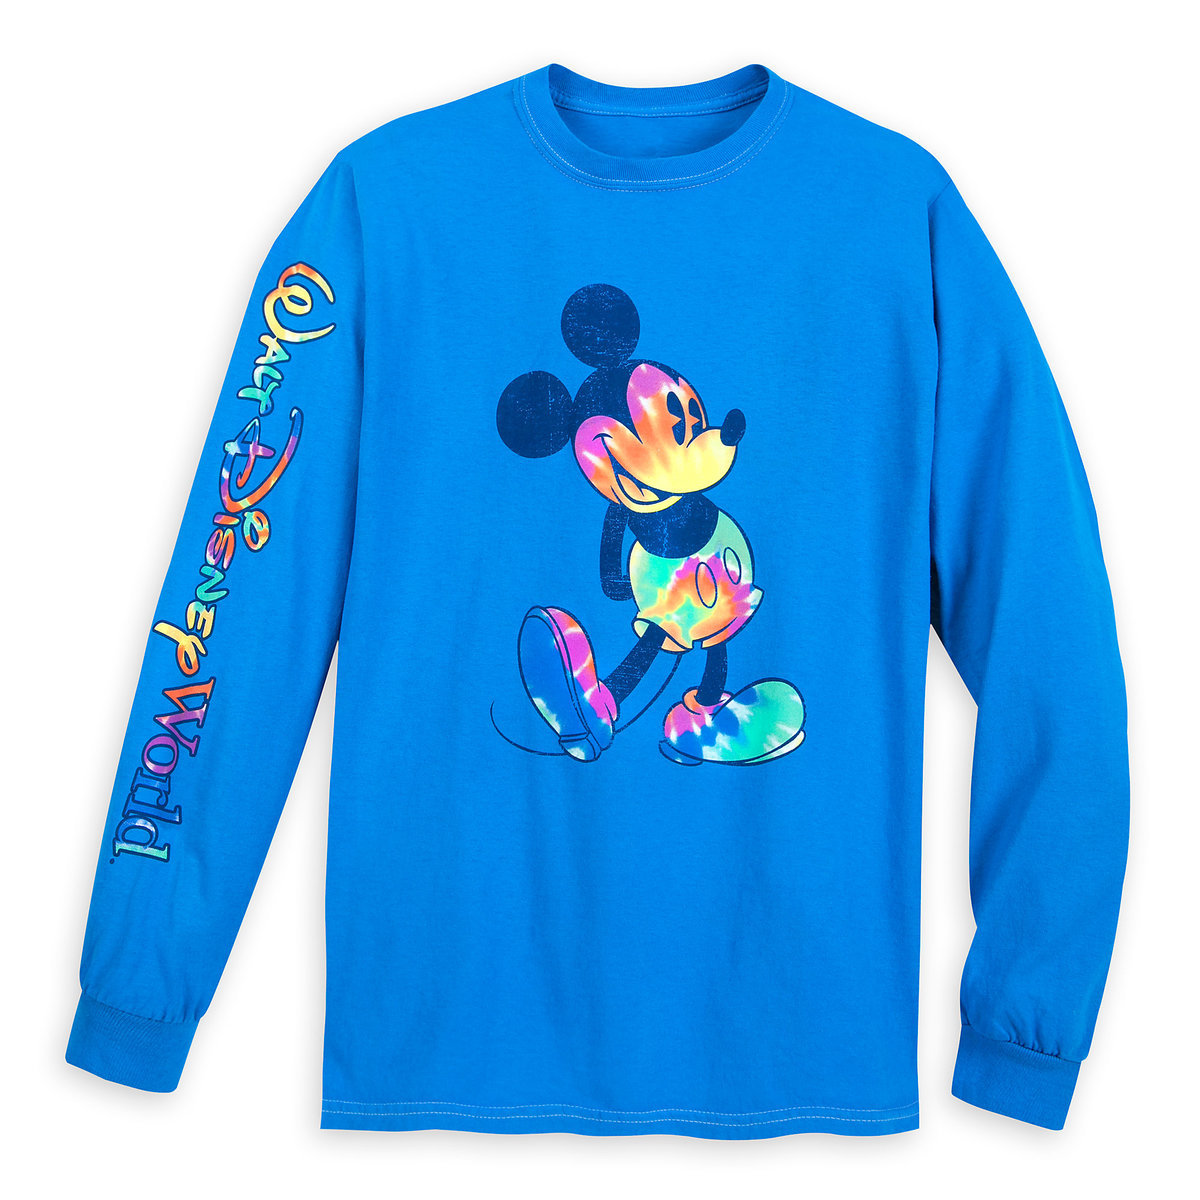 63ec85c3af4aa8 Product Image of Mickey Mouse Long Sleeve Tie-Dye Print T-Shirt for Adults